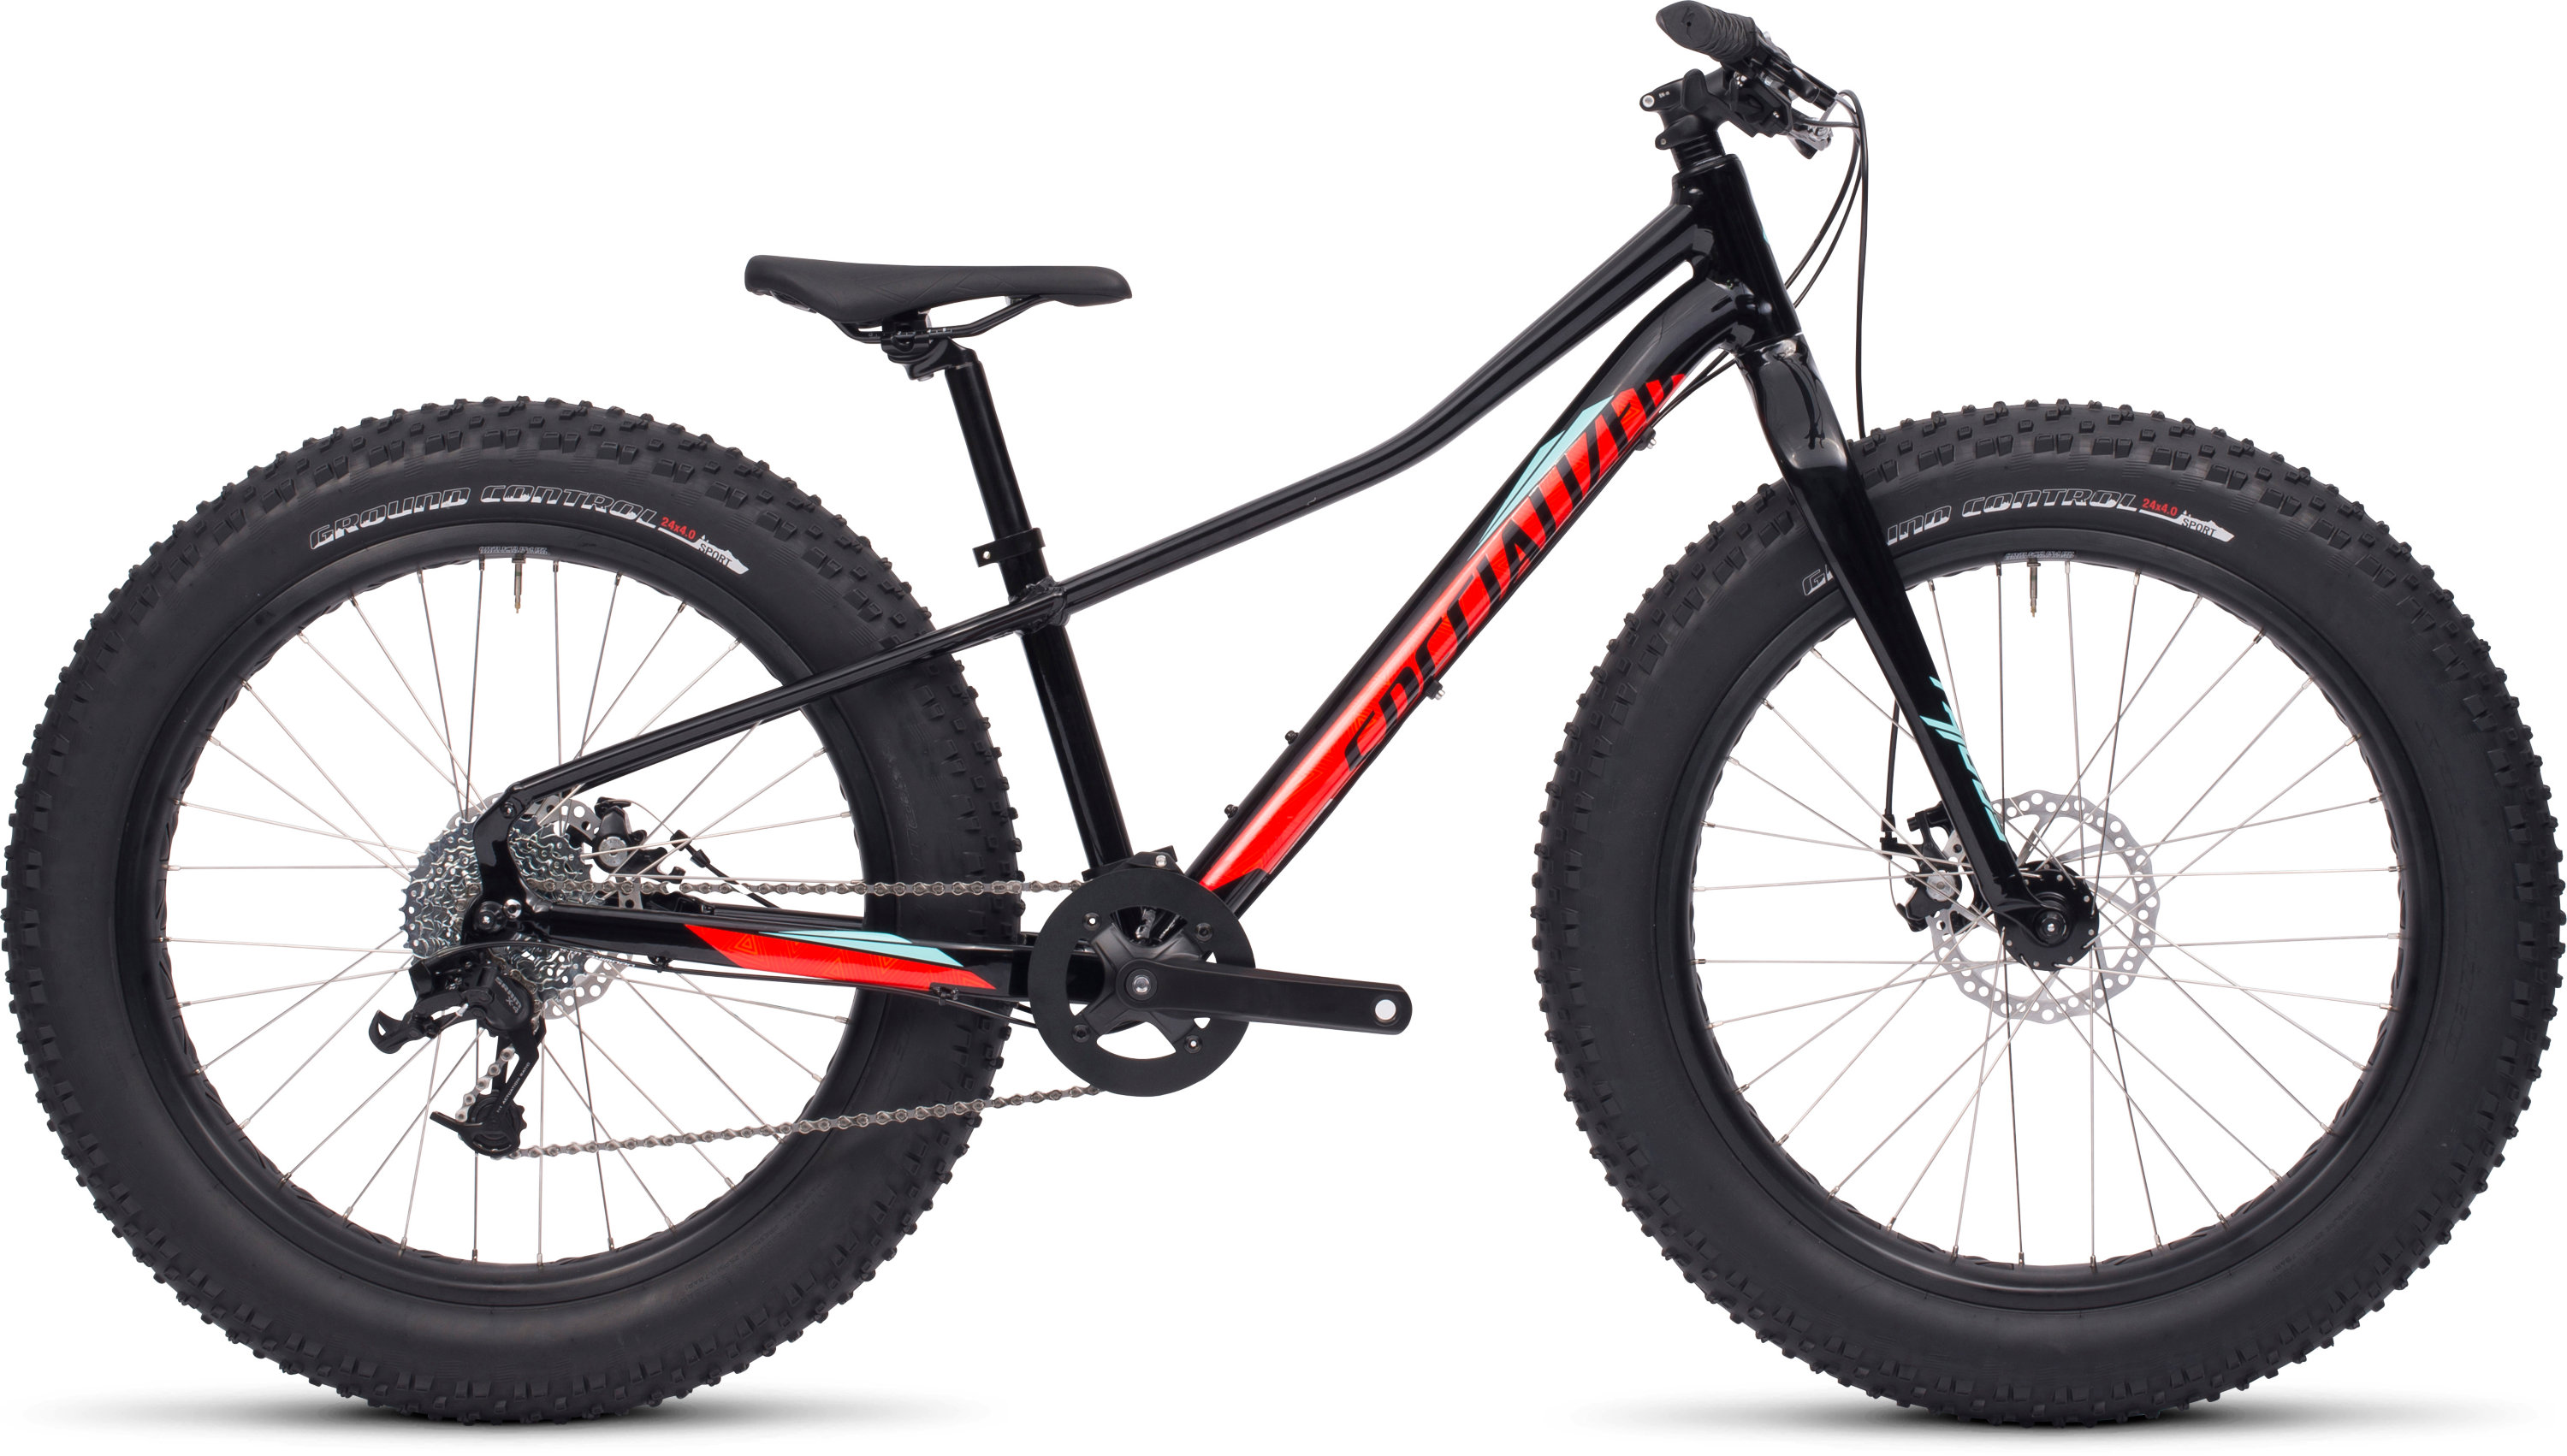 SPECIALIZED FATBOY 24 BLK/RKTRED/TEAL 12 - Bikedreams & Dustbikes